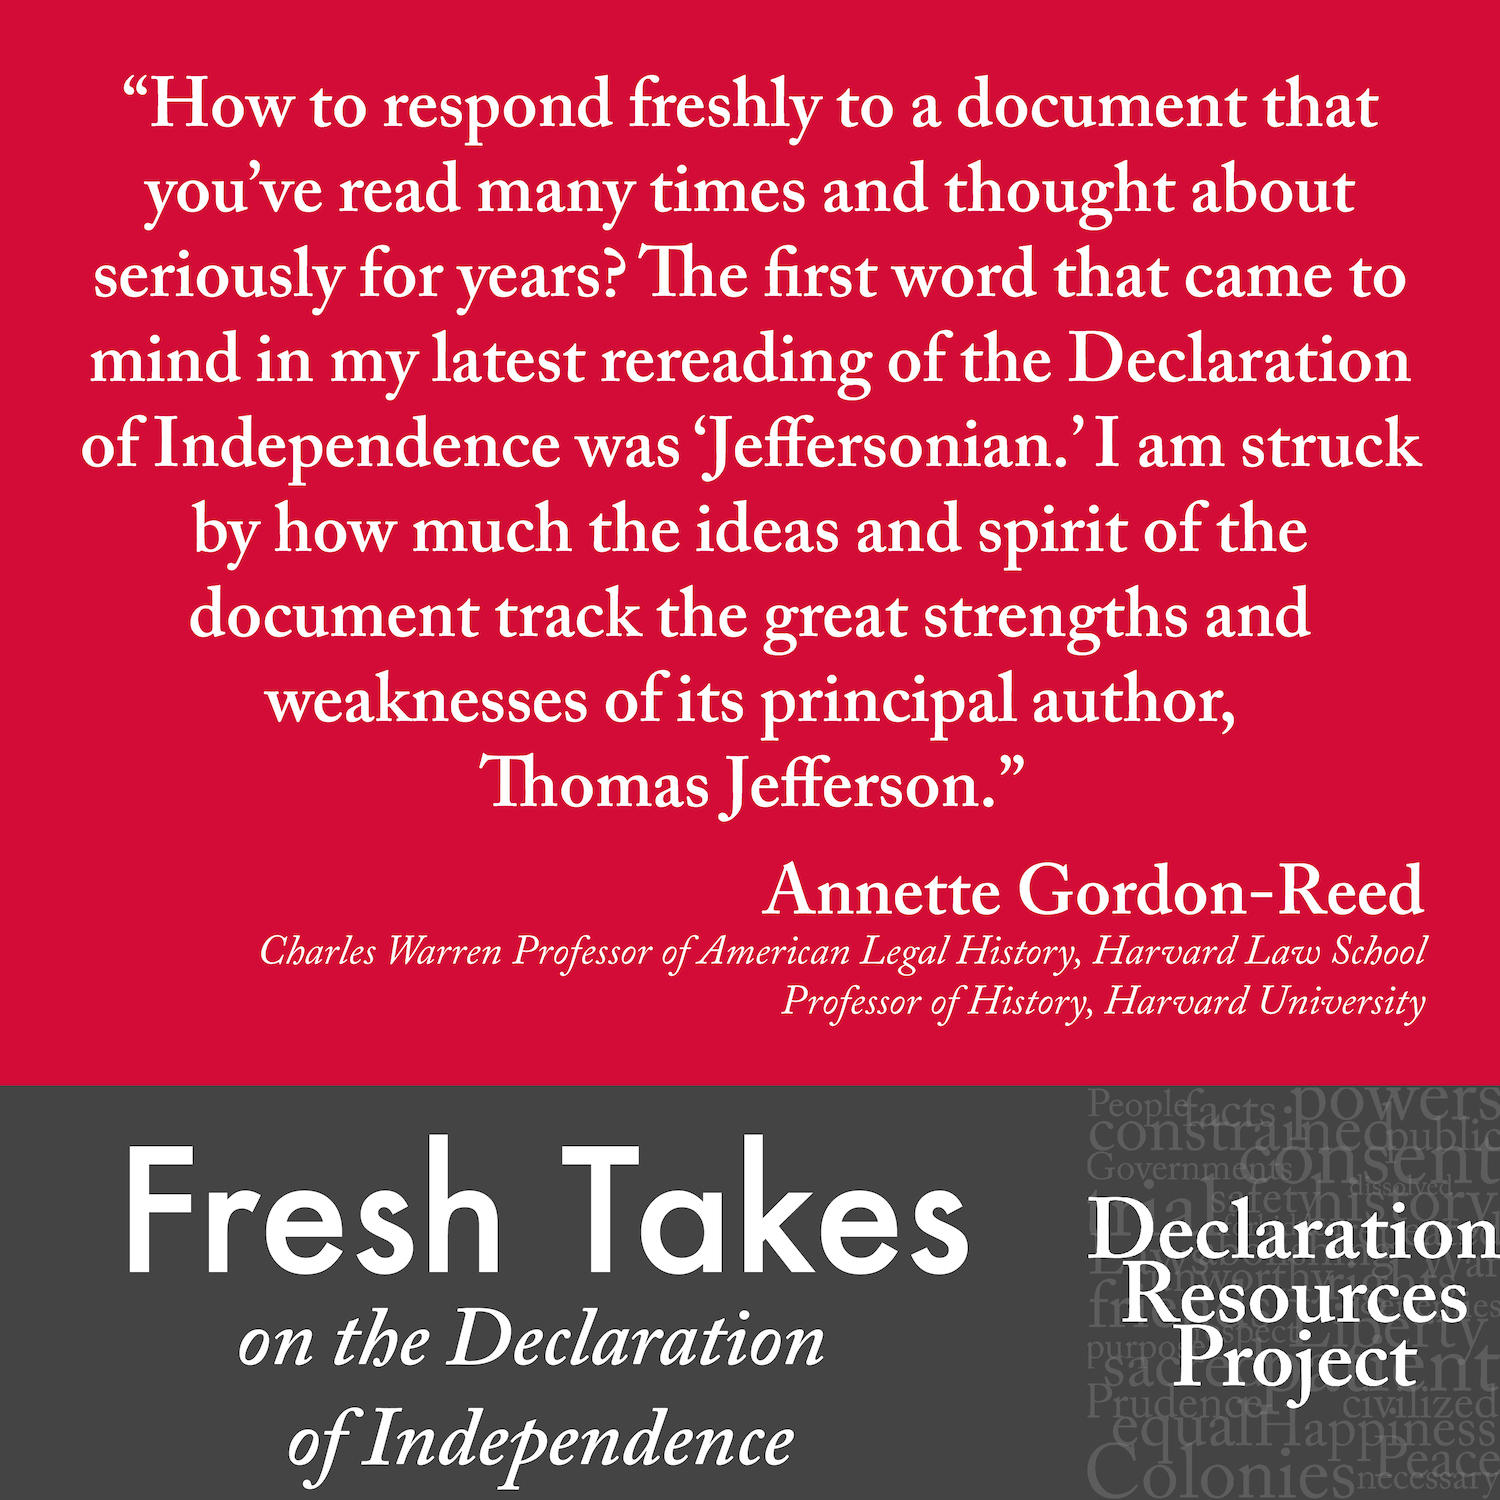 Annette Gordon-Reed's Fresh Take on the Declaration of Independence